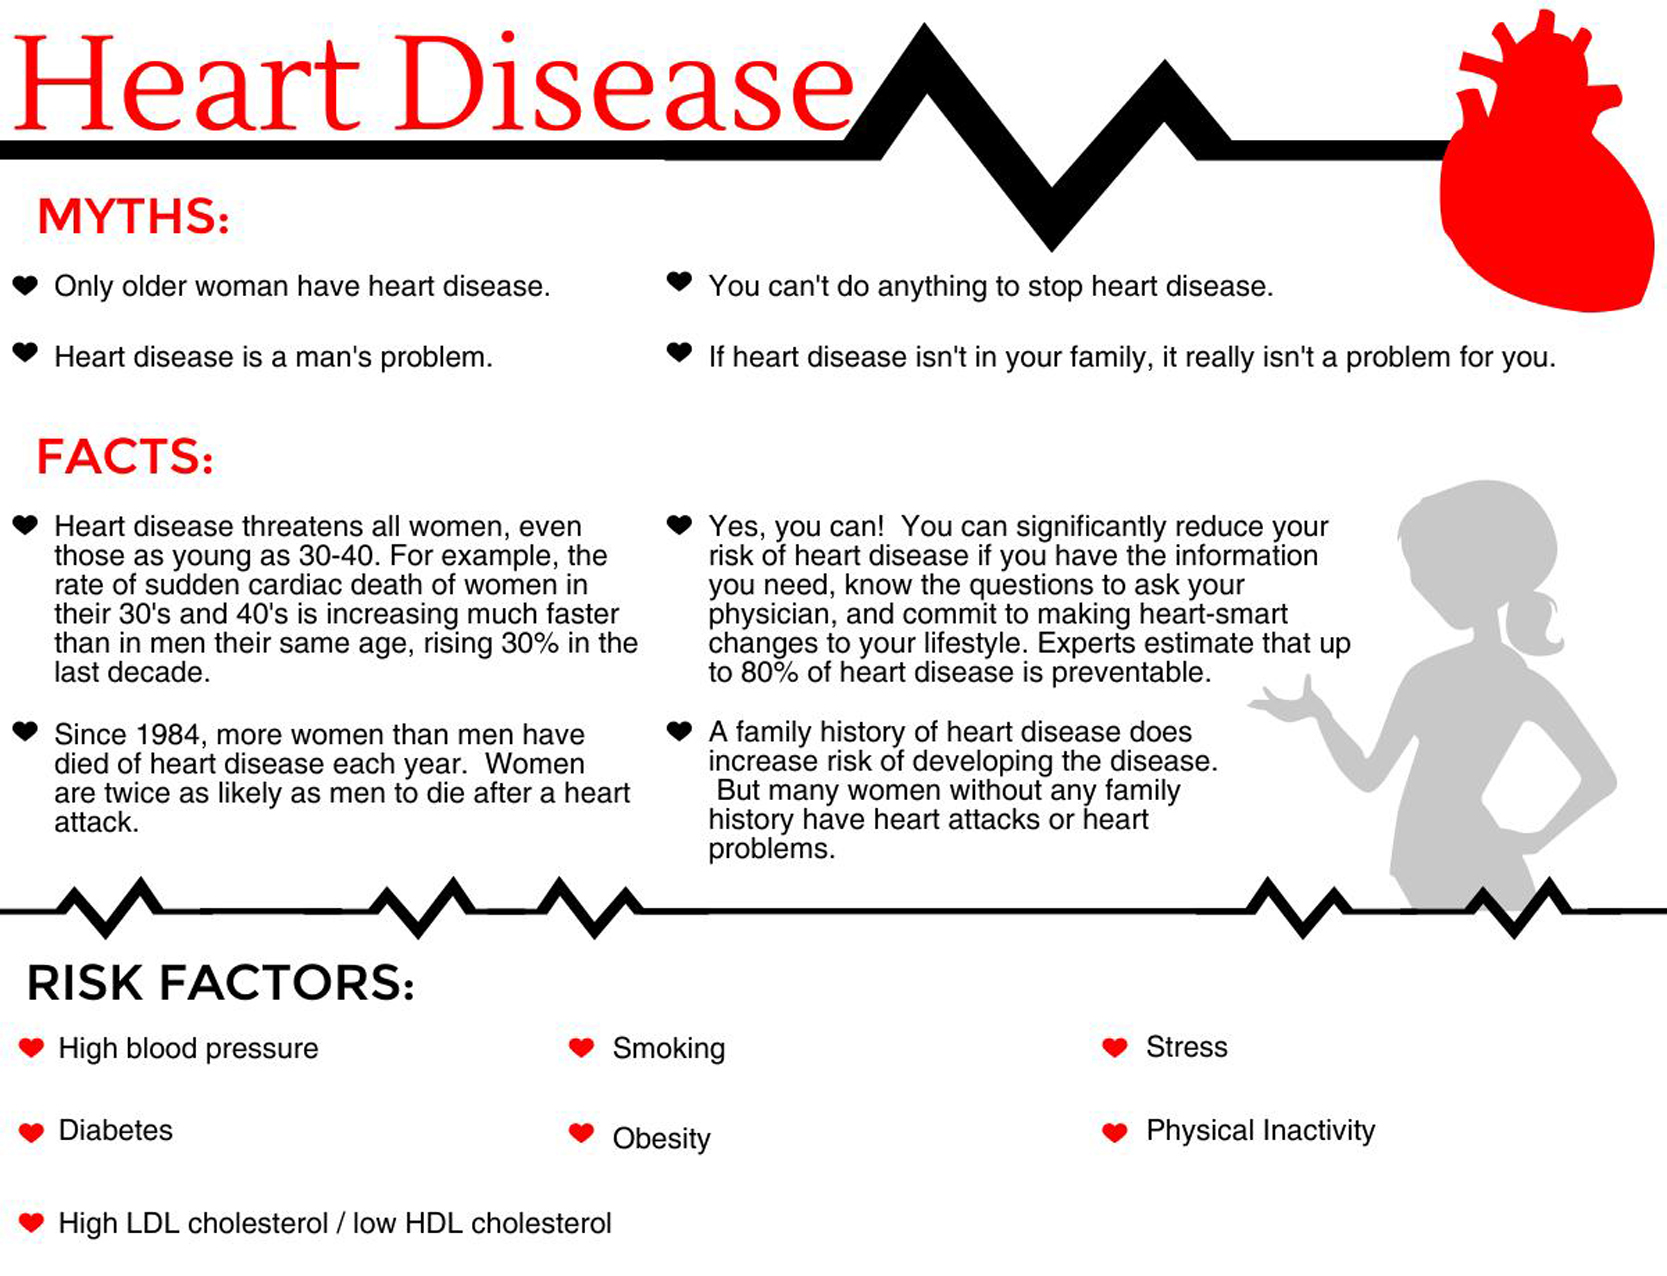 Heart Disease Family History forecast